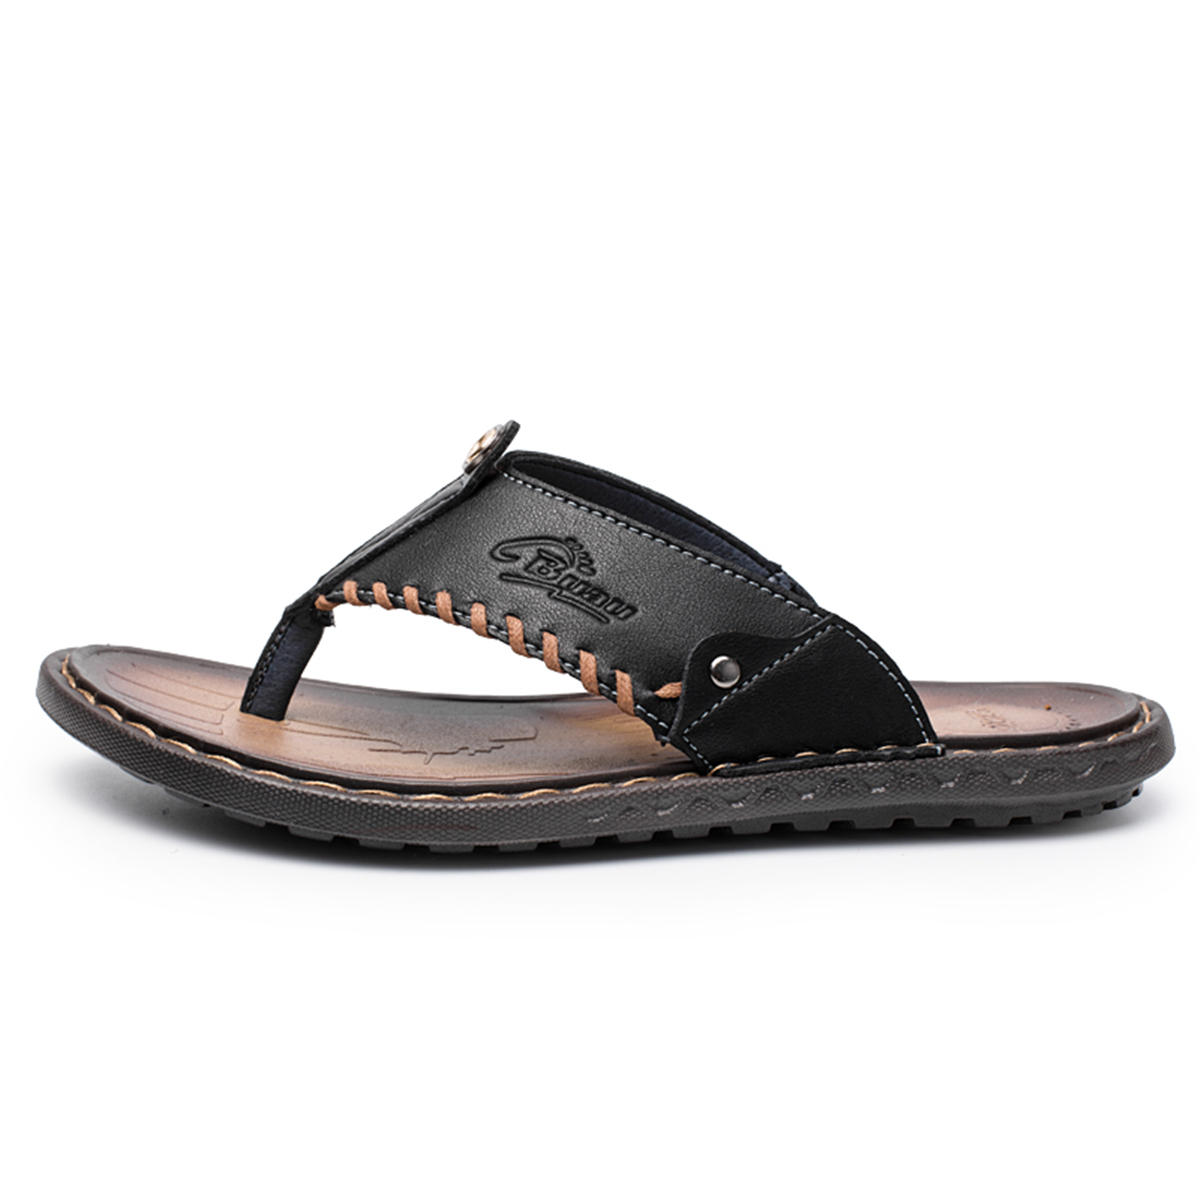 585e9a461a0 Mens Sandals Toe Shallow Summer Shoes Anti-slip Slippers Comfort Outdoor  Sandals Summer Beach Shoes